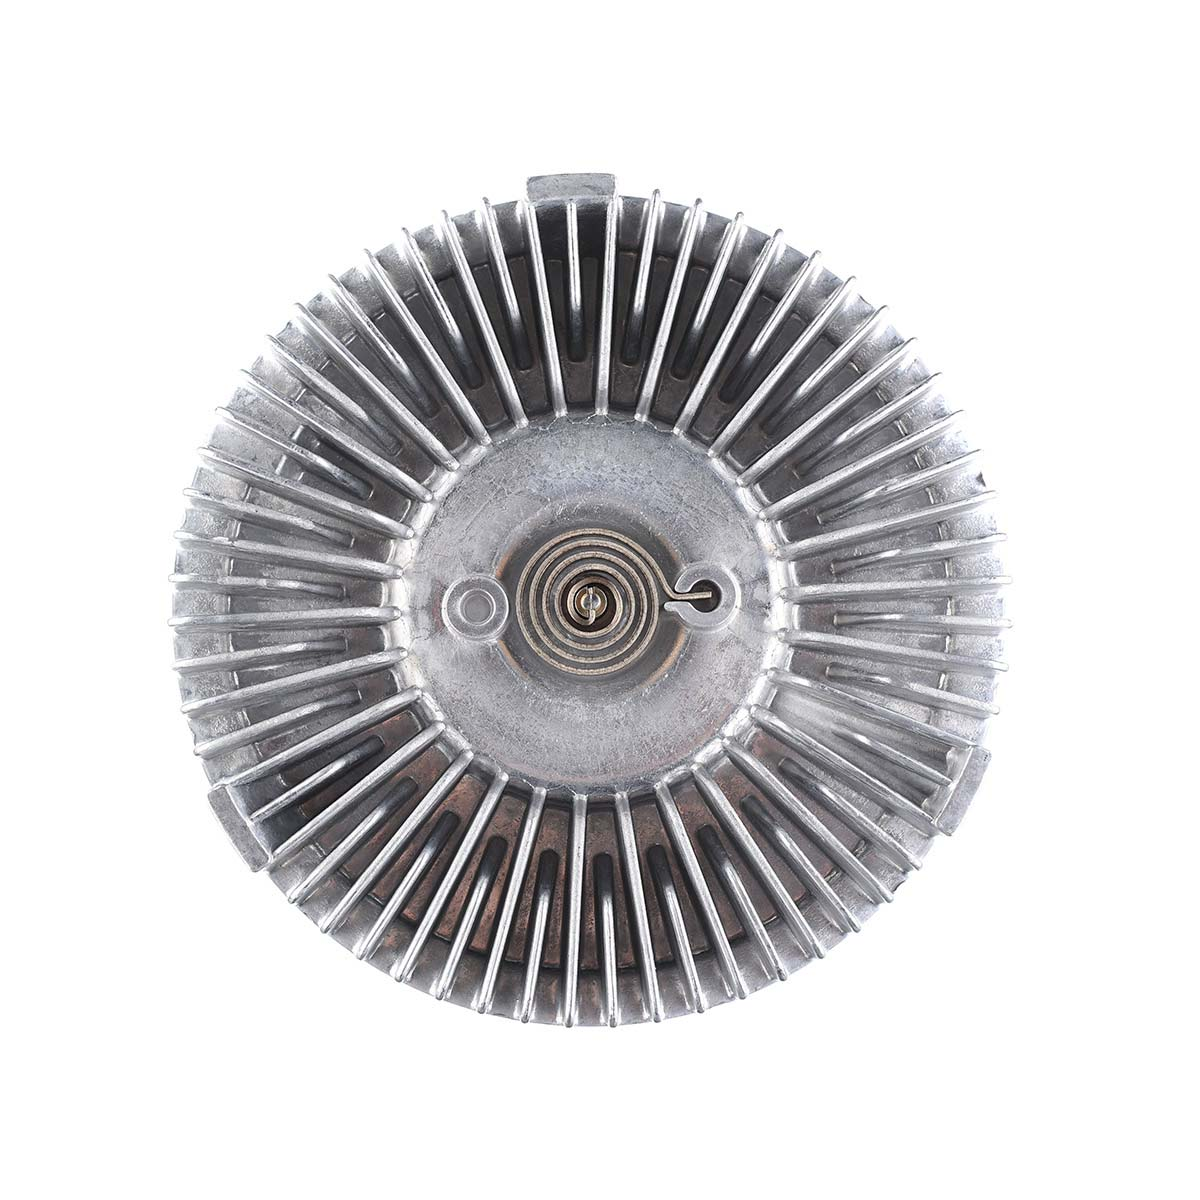 engine cooling fan clutch for ford ranger 1998 1999 2011 explorer sport trac mazda b4000 mercury mountaineer 4 0l f87z8a616fa in fans kits from  [ 1200 x 1200 Pixel ]